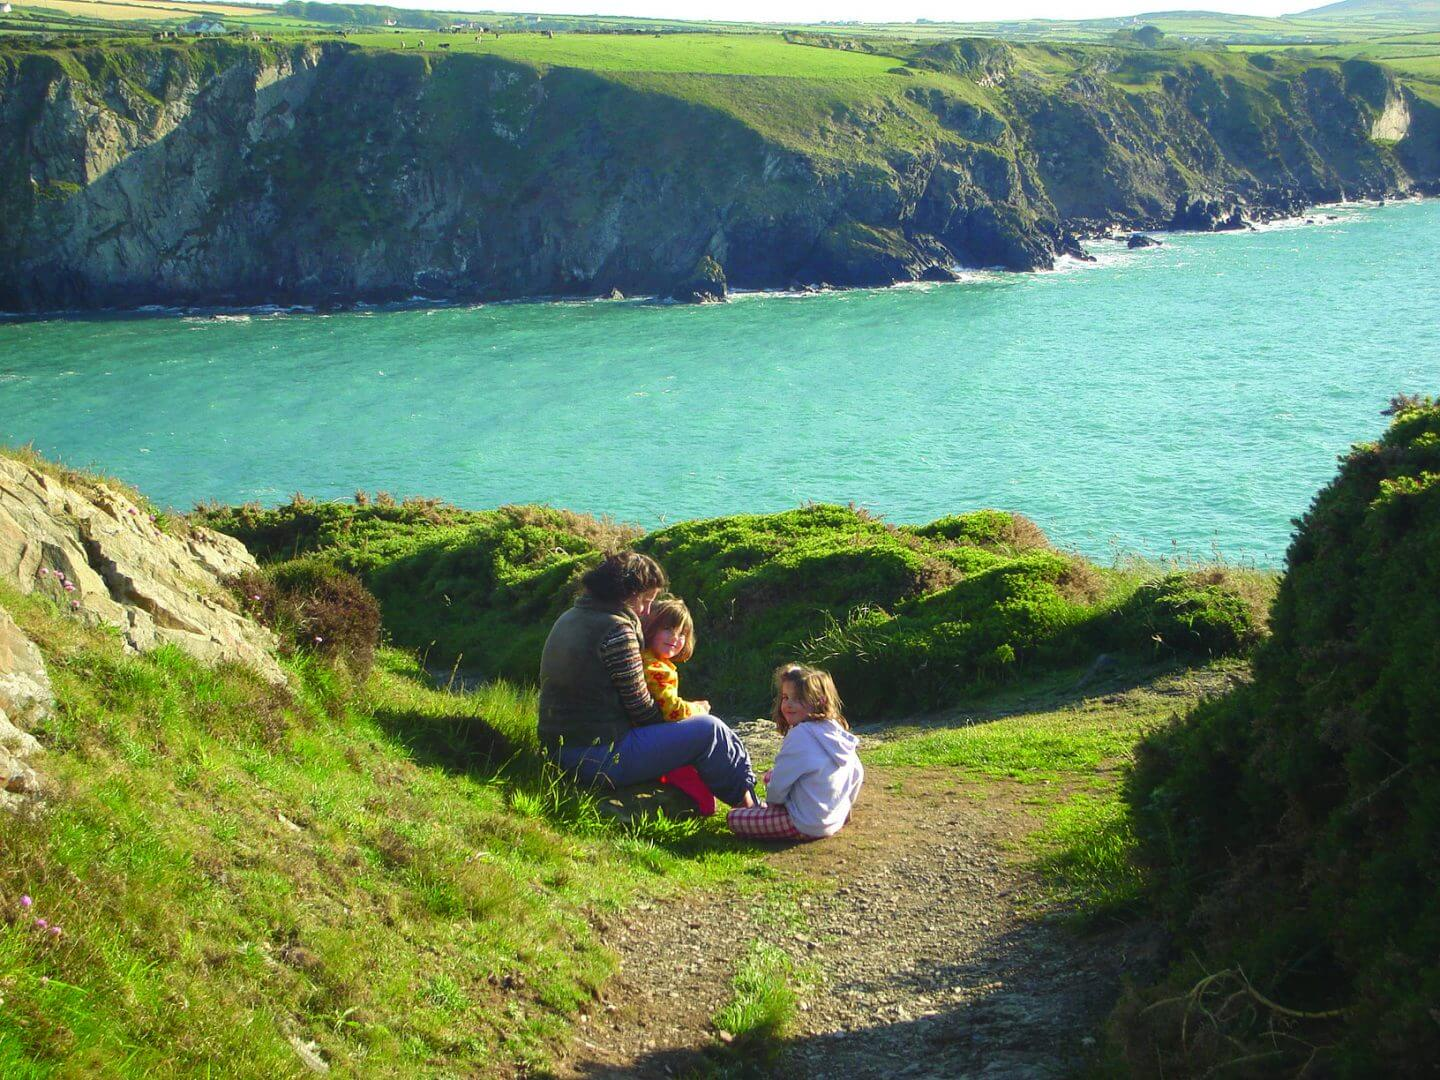 Old School Hostel Formerly Yha Trefin - group accommodation - family activities - pembrokeshire coast - beaches - eco friendly hostel